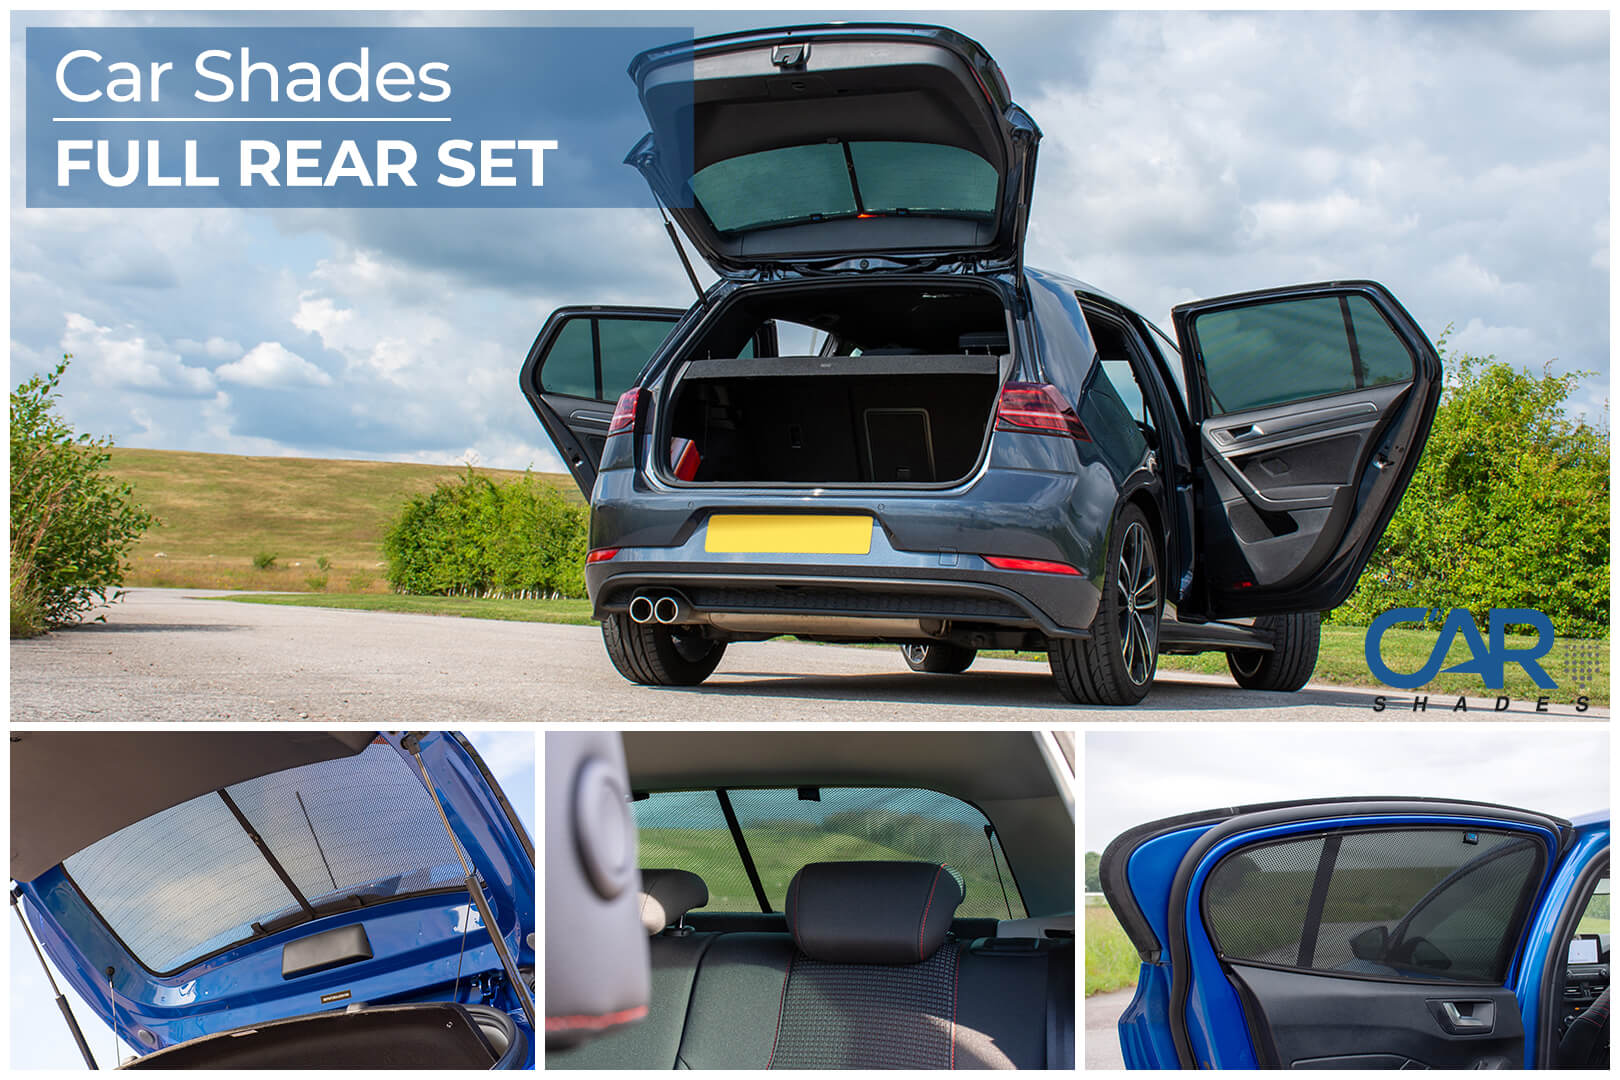 Car Shades - Full Rear Set